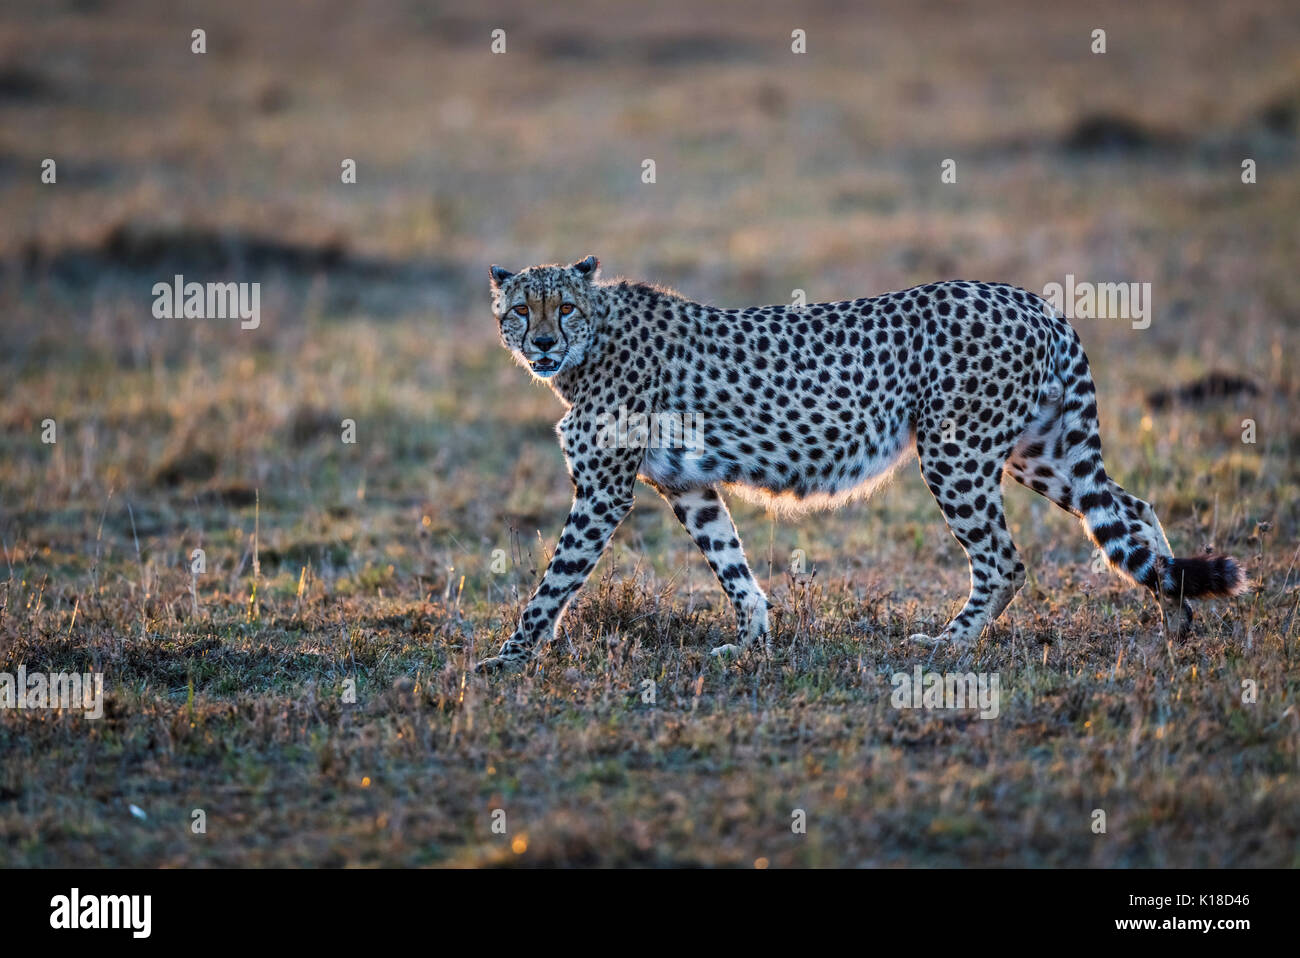 Backlit adult cheetah (Acinonyx jubatus) with characteristic spotted coat walking in early morning light across the savannah of Masai Mara, Kenya - Stock Image